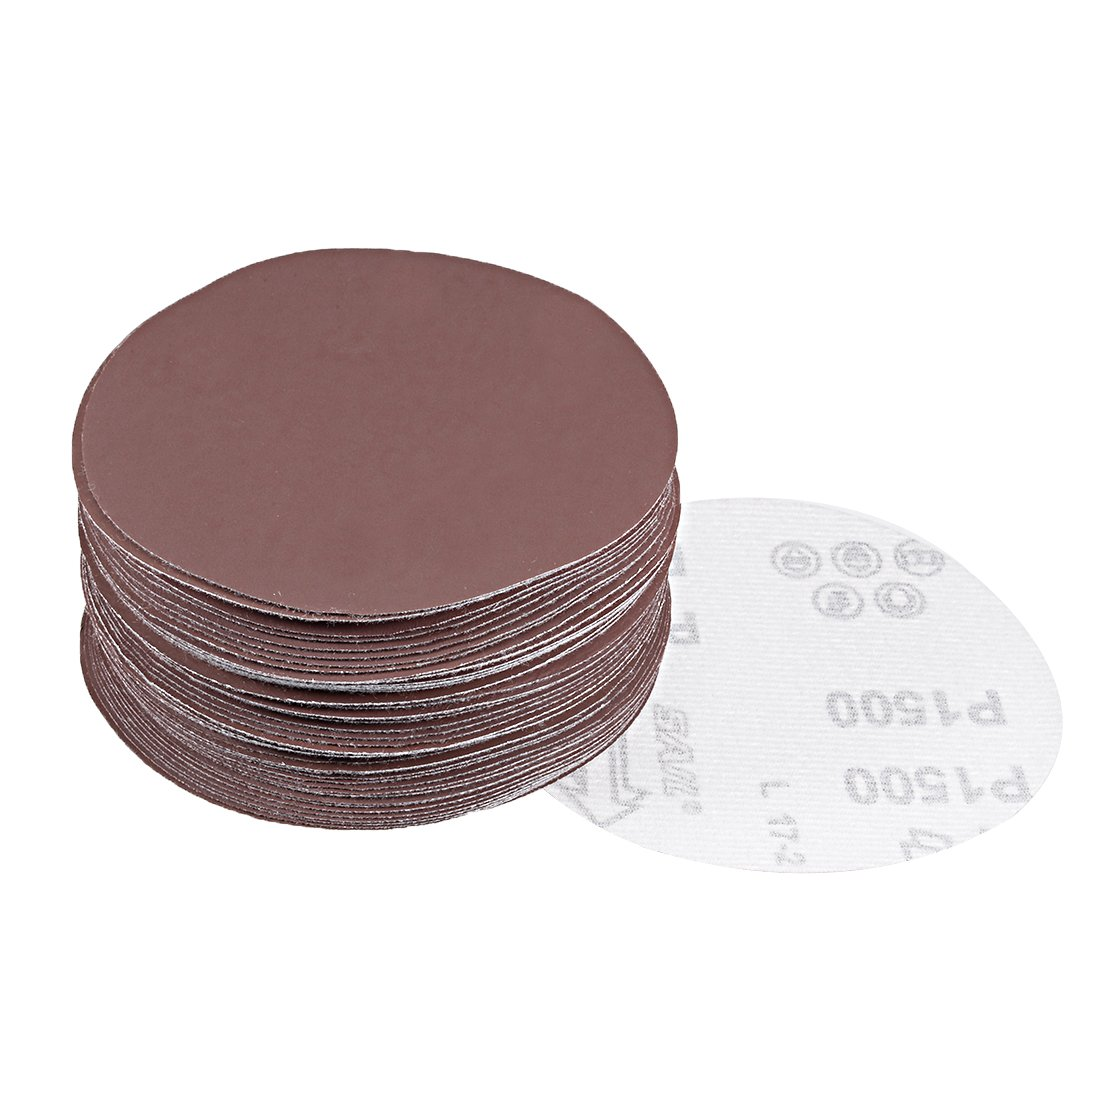 uxcell® 50Pcs 5 inch Hook and Loop Sanding Disc 2000 Grits Flocking Sandpaper for Random Orbit Sander a18060400ux0450